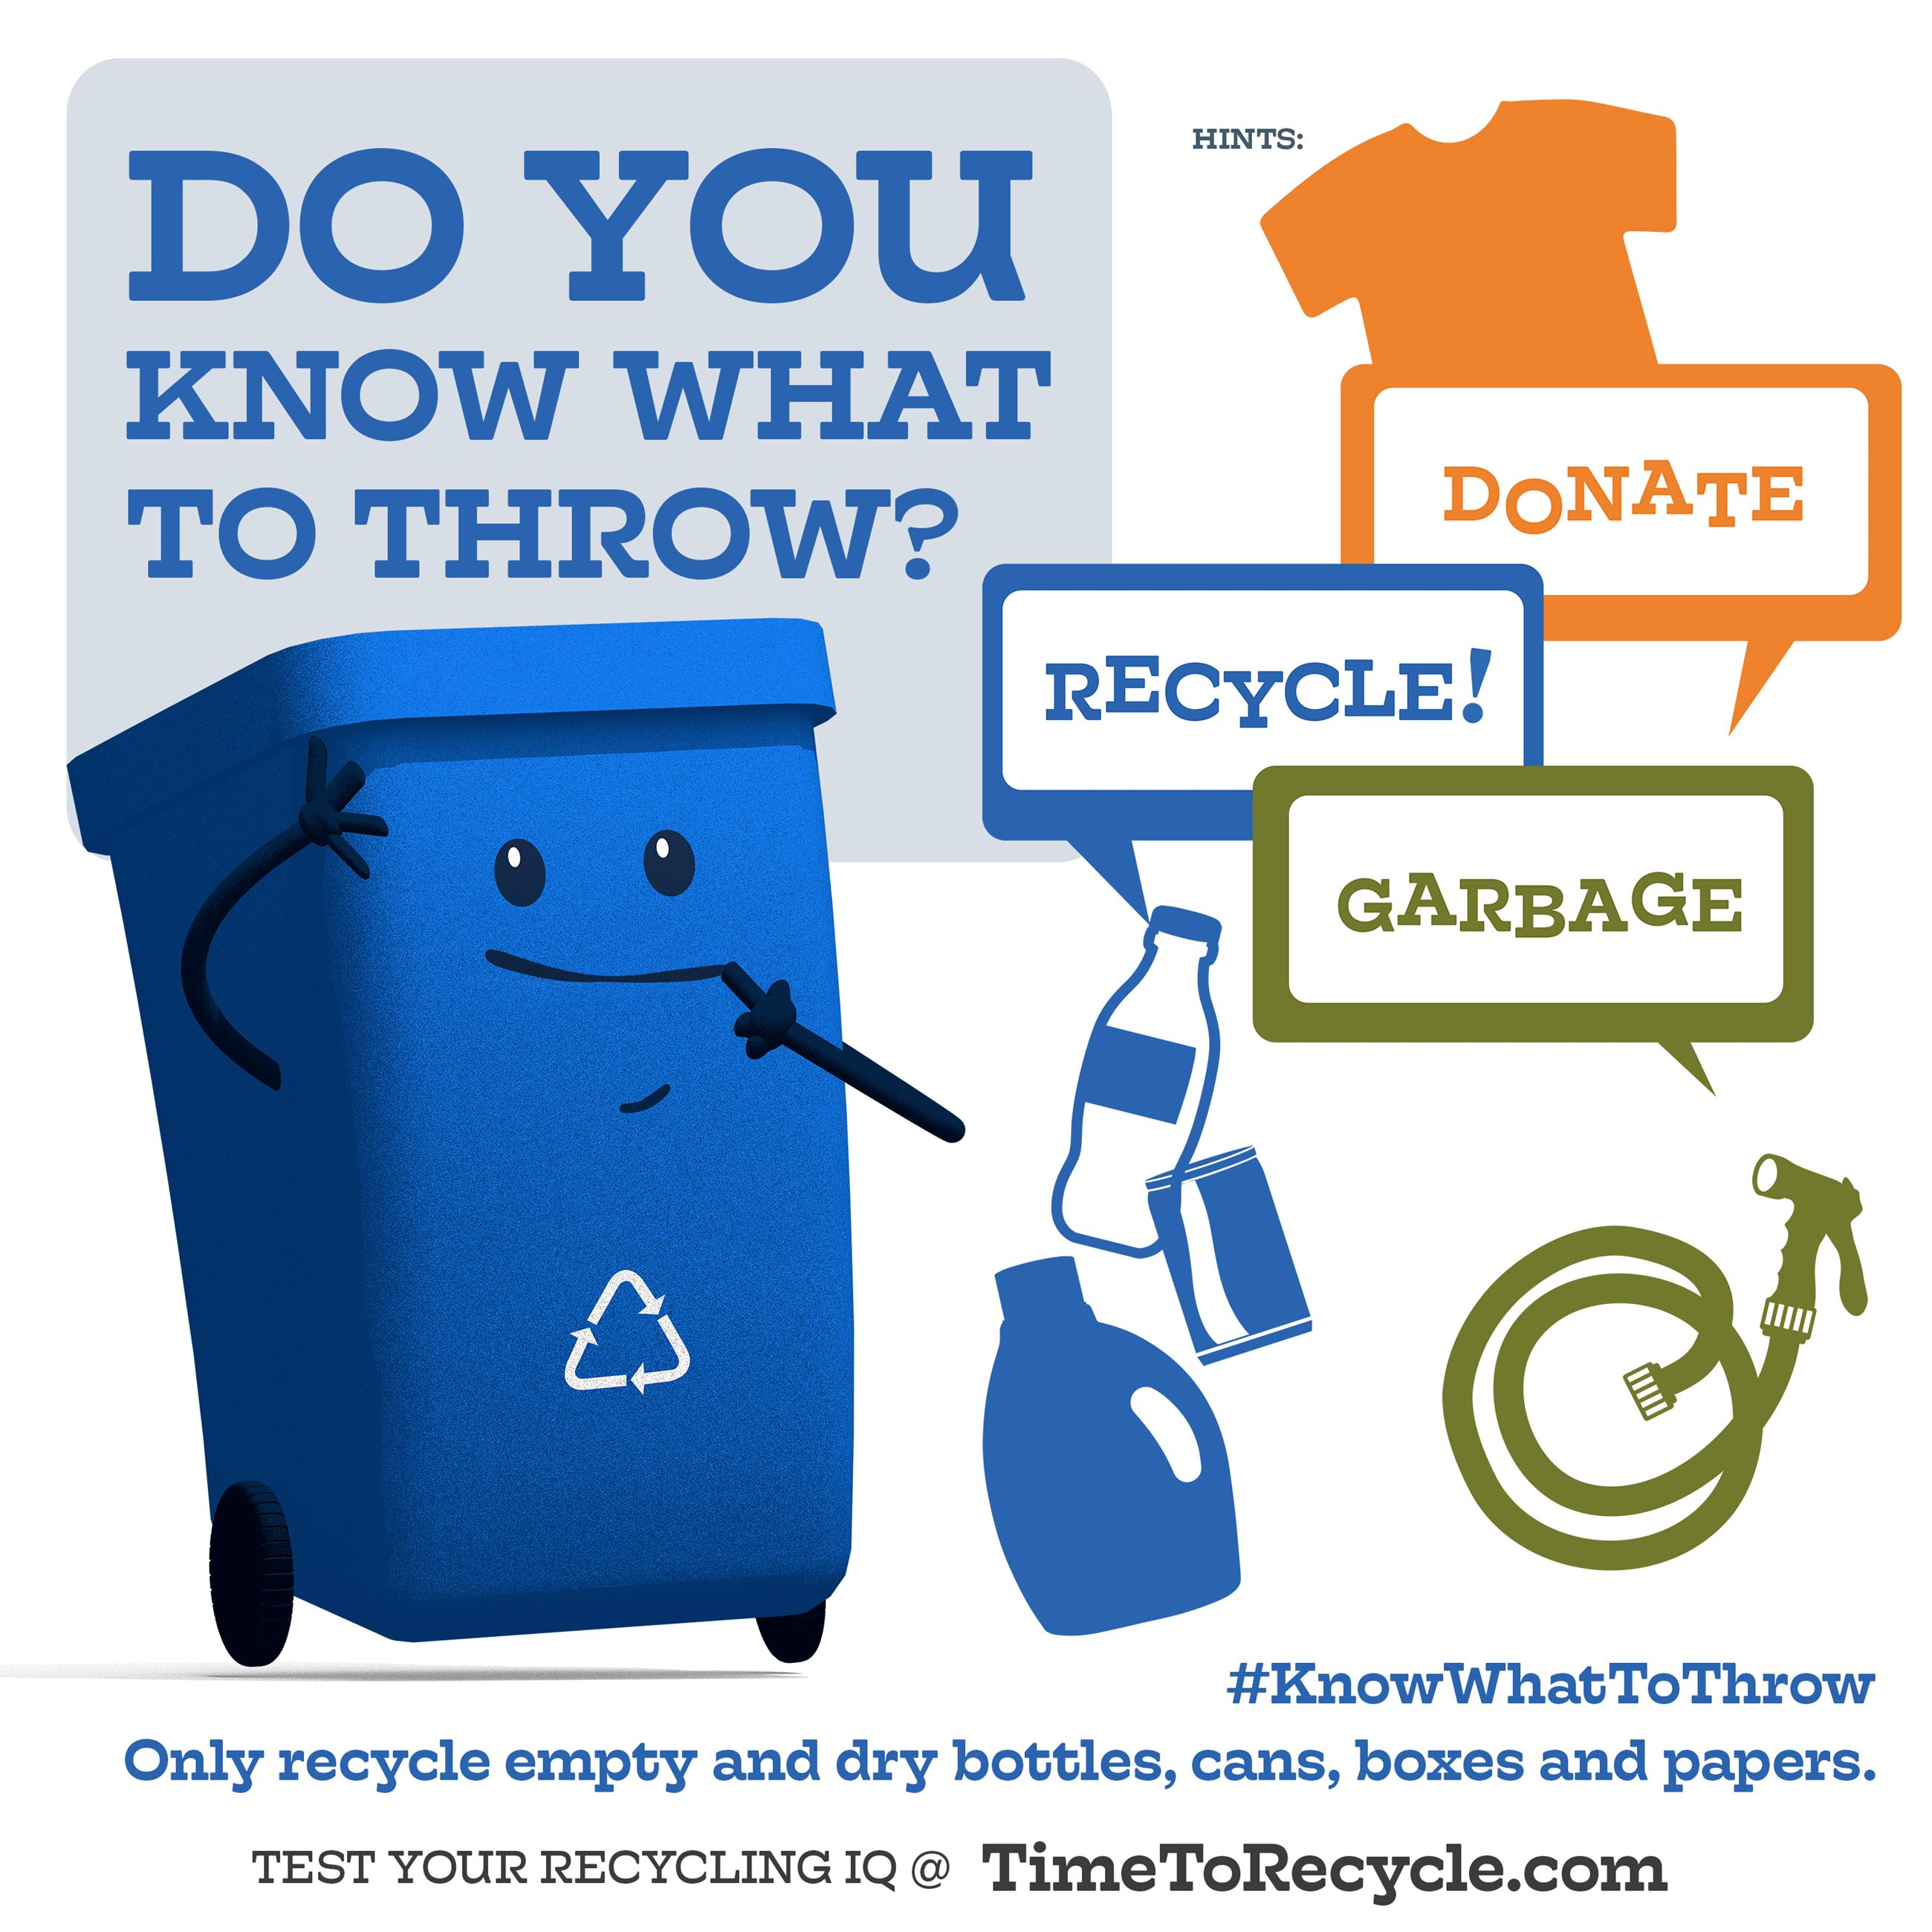 Do you know what to throw? Some items should be donated, while others are garbage and do not belong